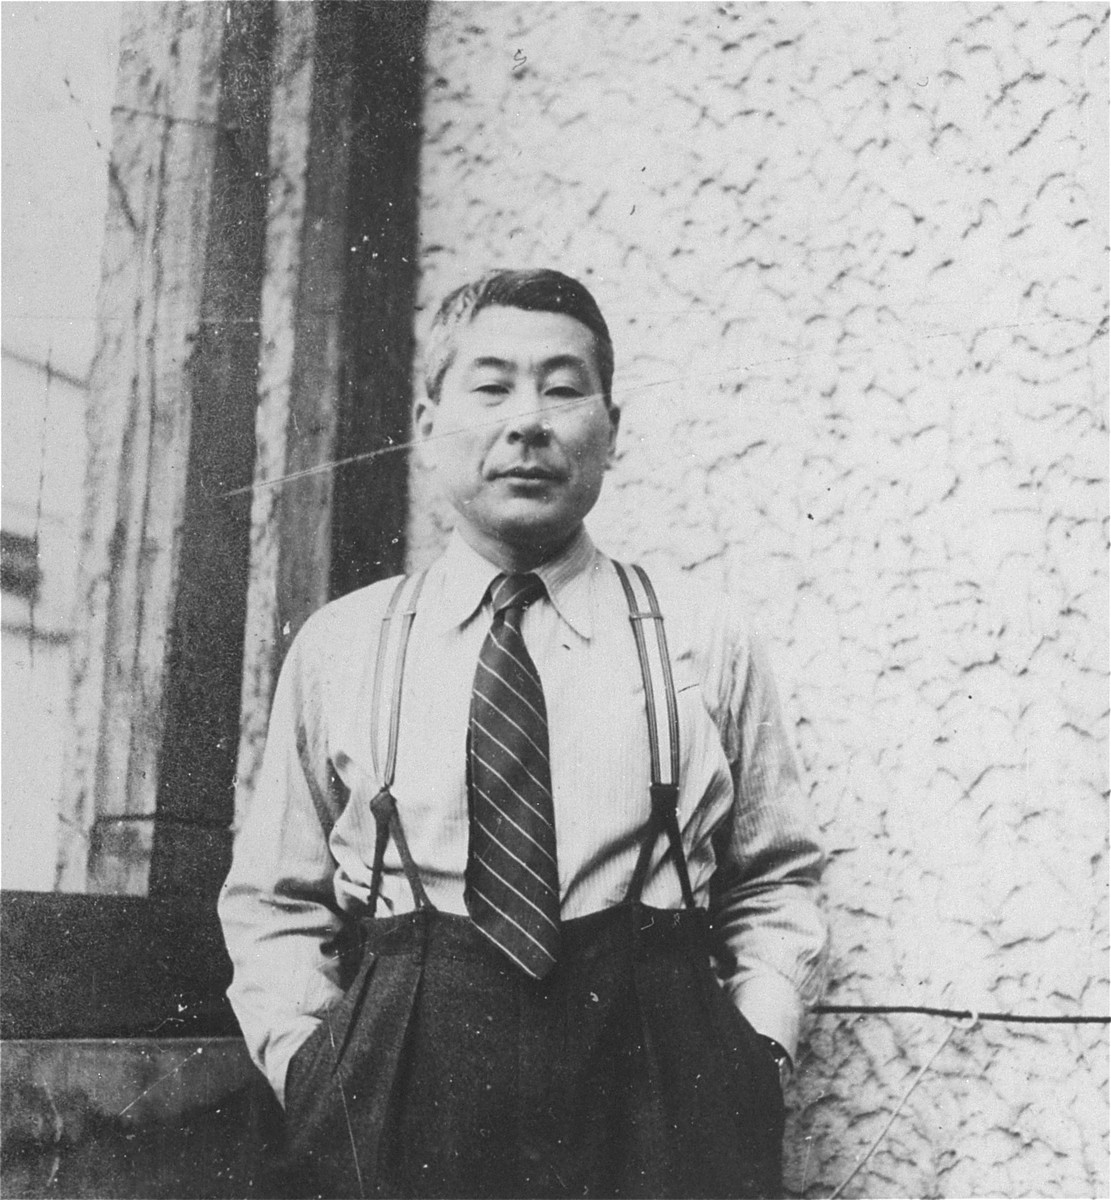 Portrait of Chiune Sugihara in Kaunas.